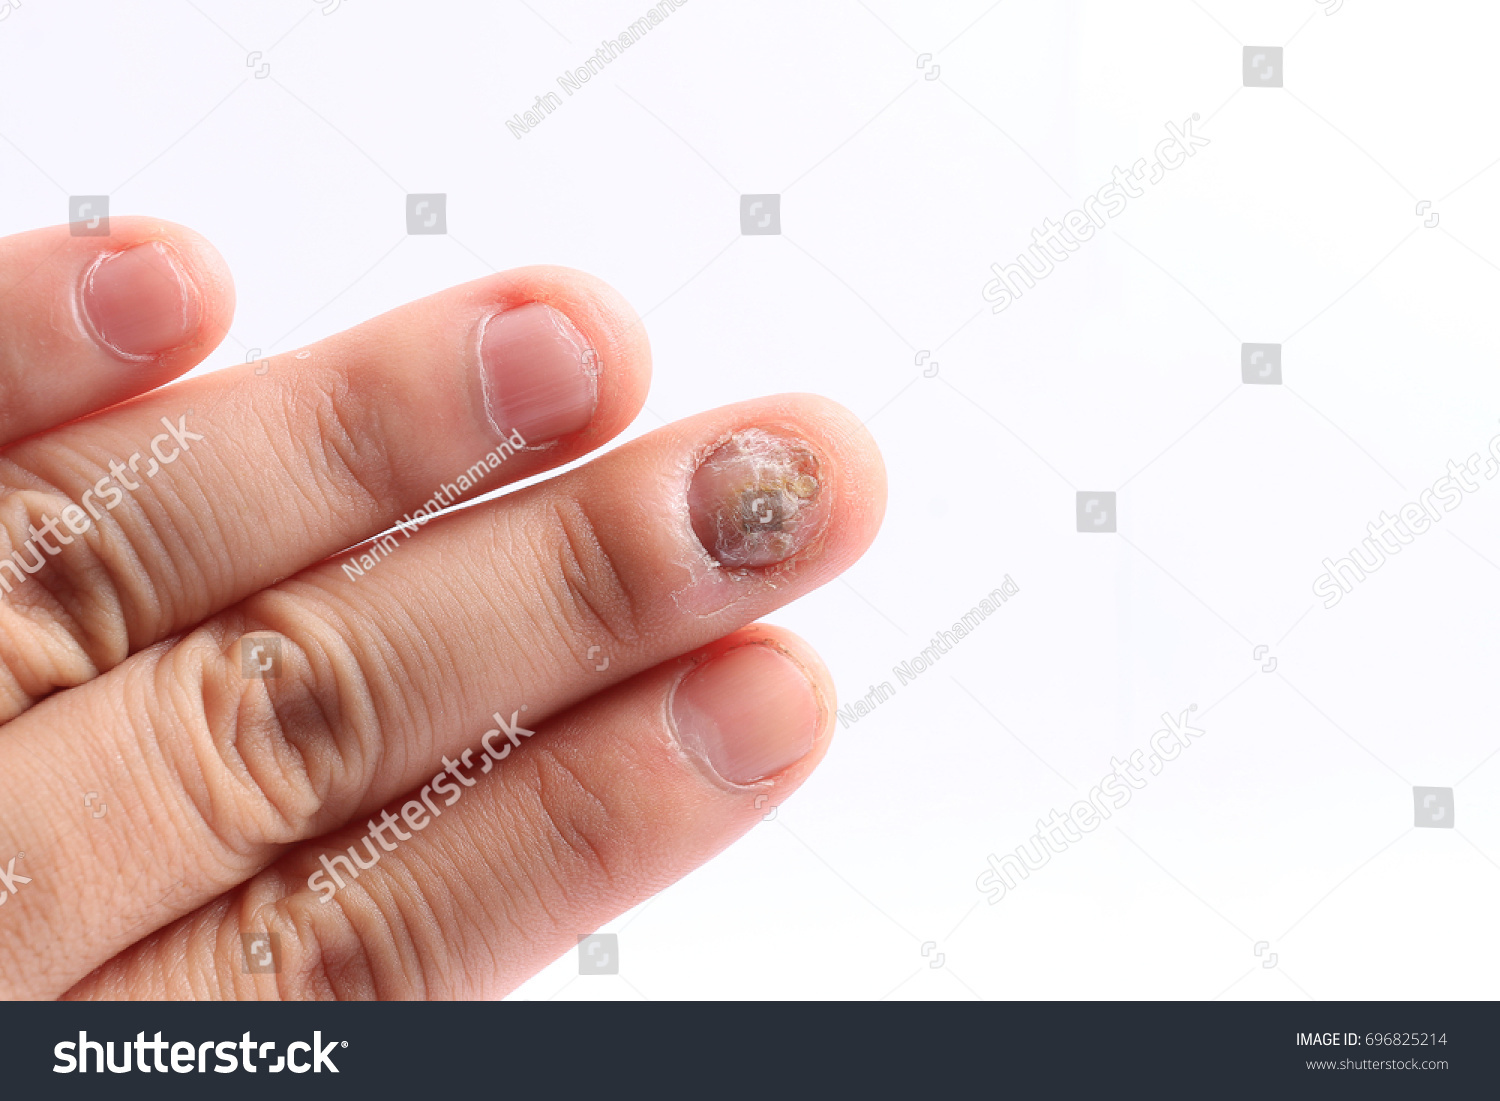 Fungus Infection On Nails Hand Finger Stock Photo (Royalty Free ...